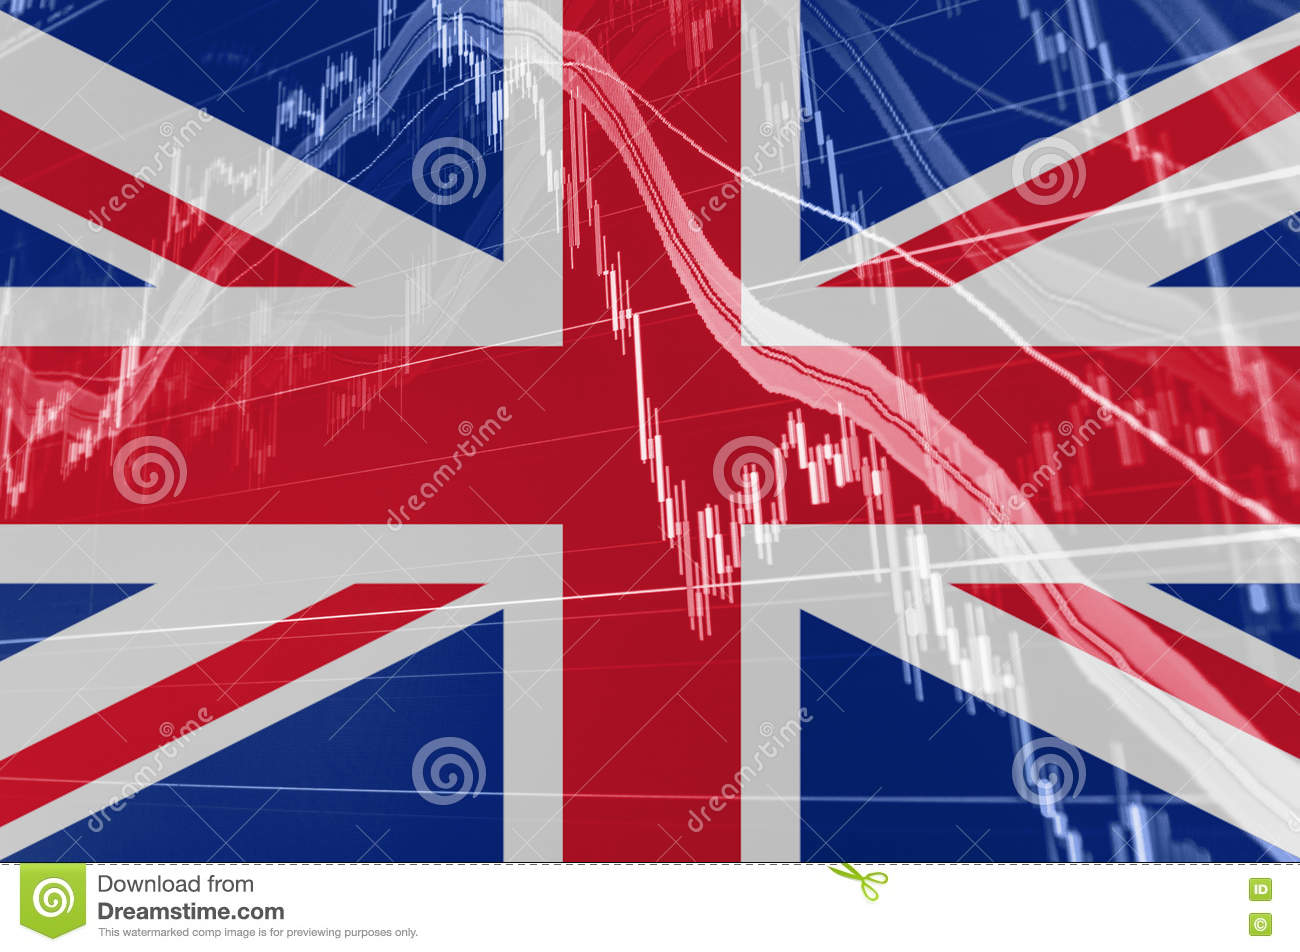 Great Britain Union Jack flag with stock exchange chart graph indicating Brexit